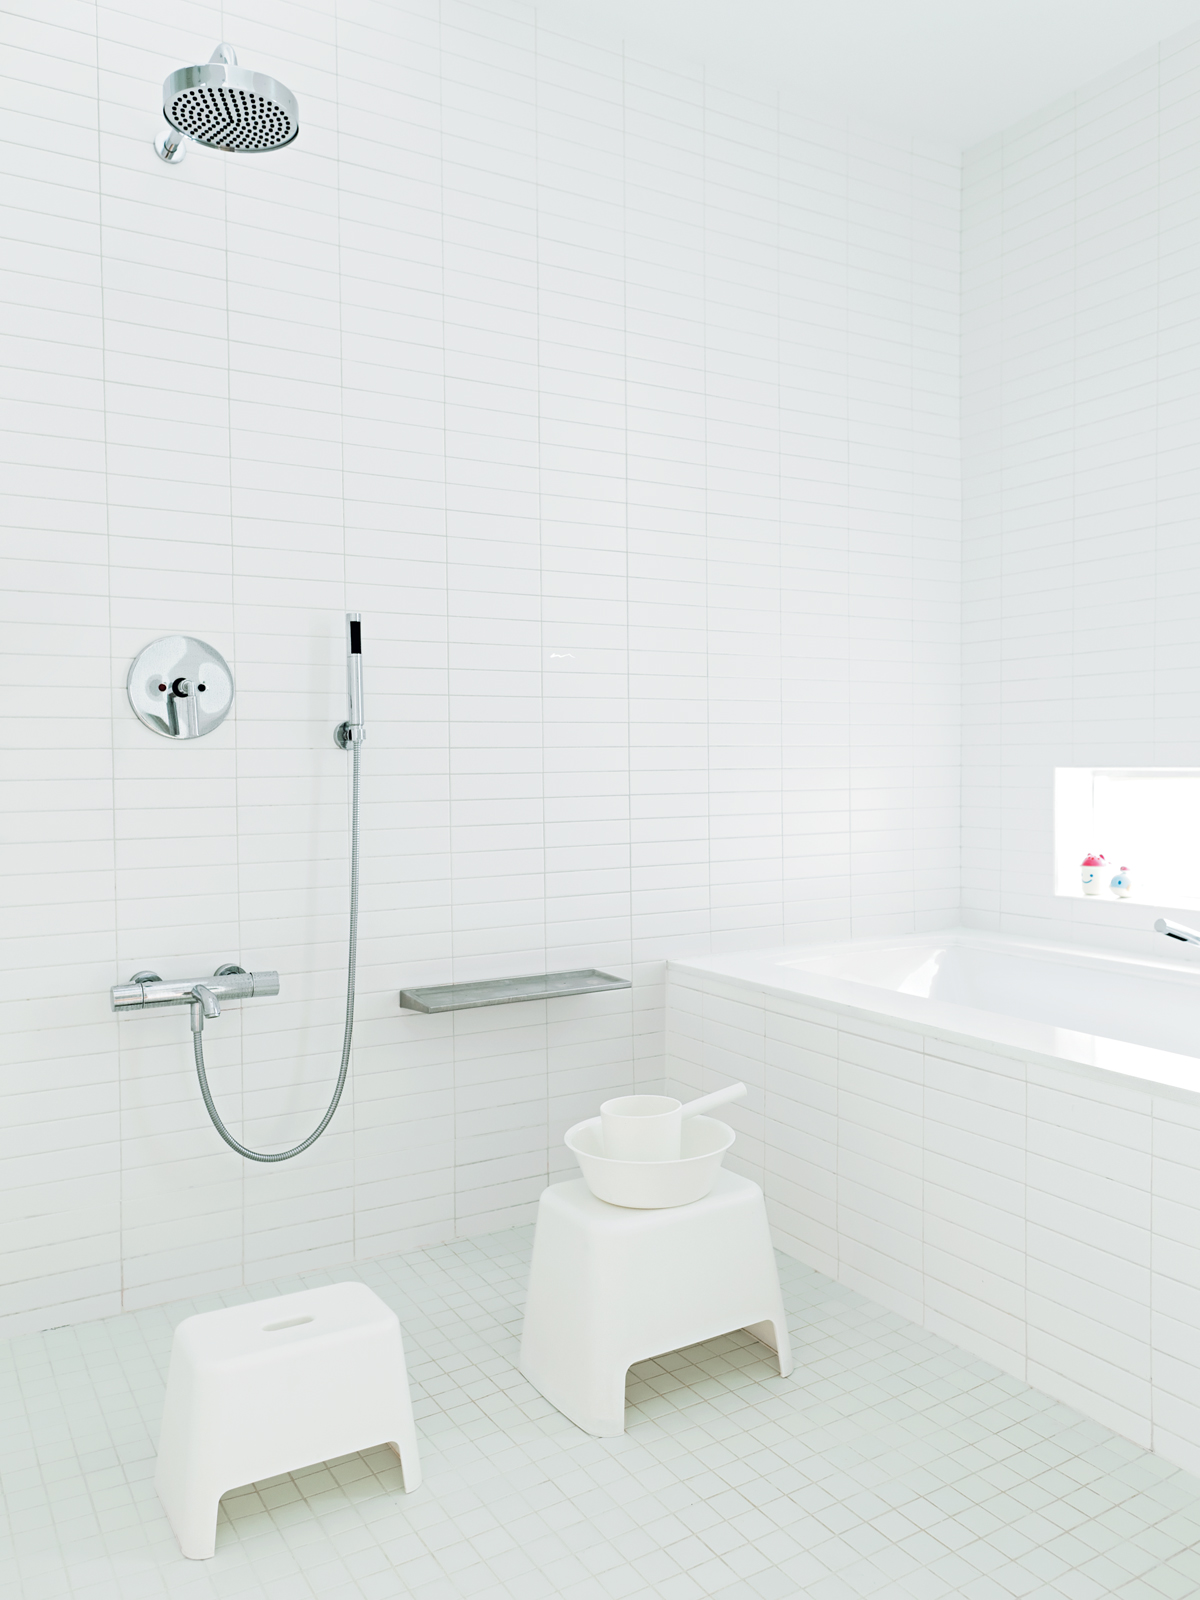 All-white master bathroom with Japanese-inspired communal shower